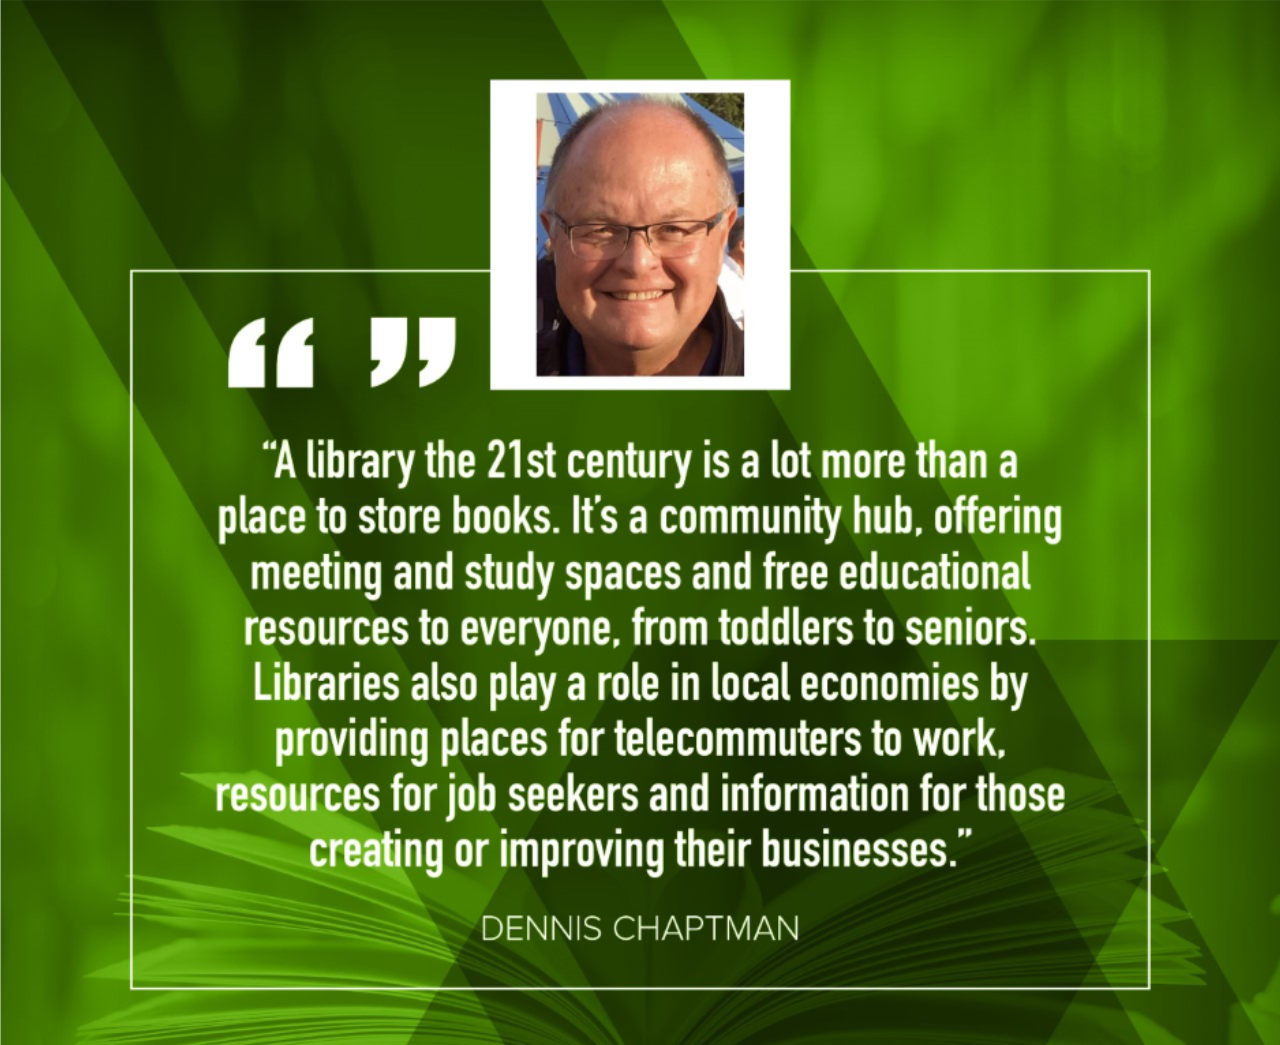 "Dennis Chaptman: ""A library in the 21st century is a lot more than a place to store books.  It's a community hub, offering meeting and study spaces and free educational resources to everyone, from toddlers to seniors.  Libraries also play a role in local economies by providing places for telecommuters to work, resoruces for job seekers and information for those creating or improving their businesses."""